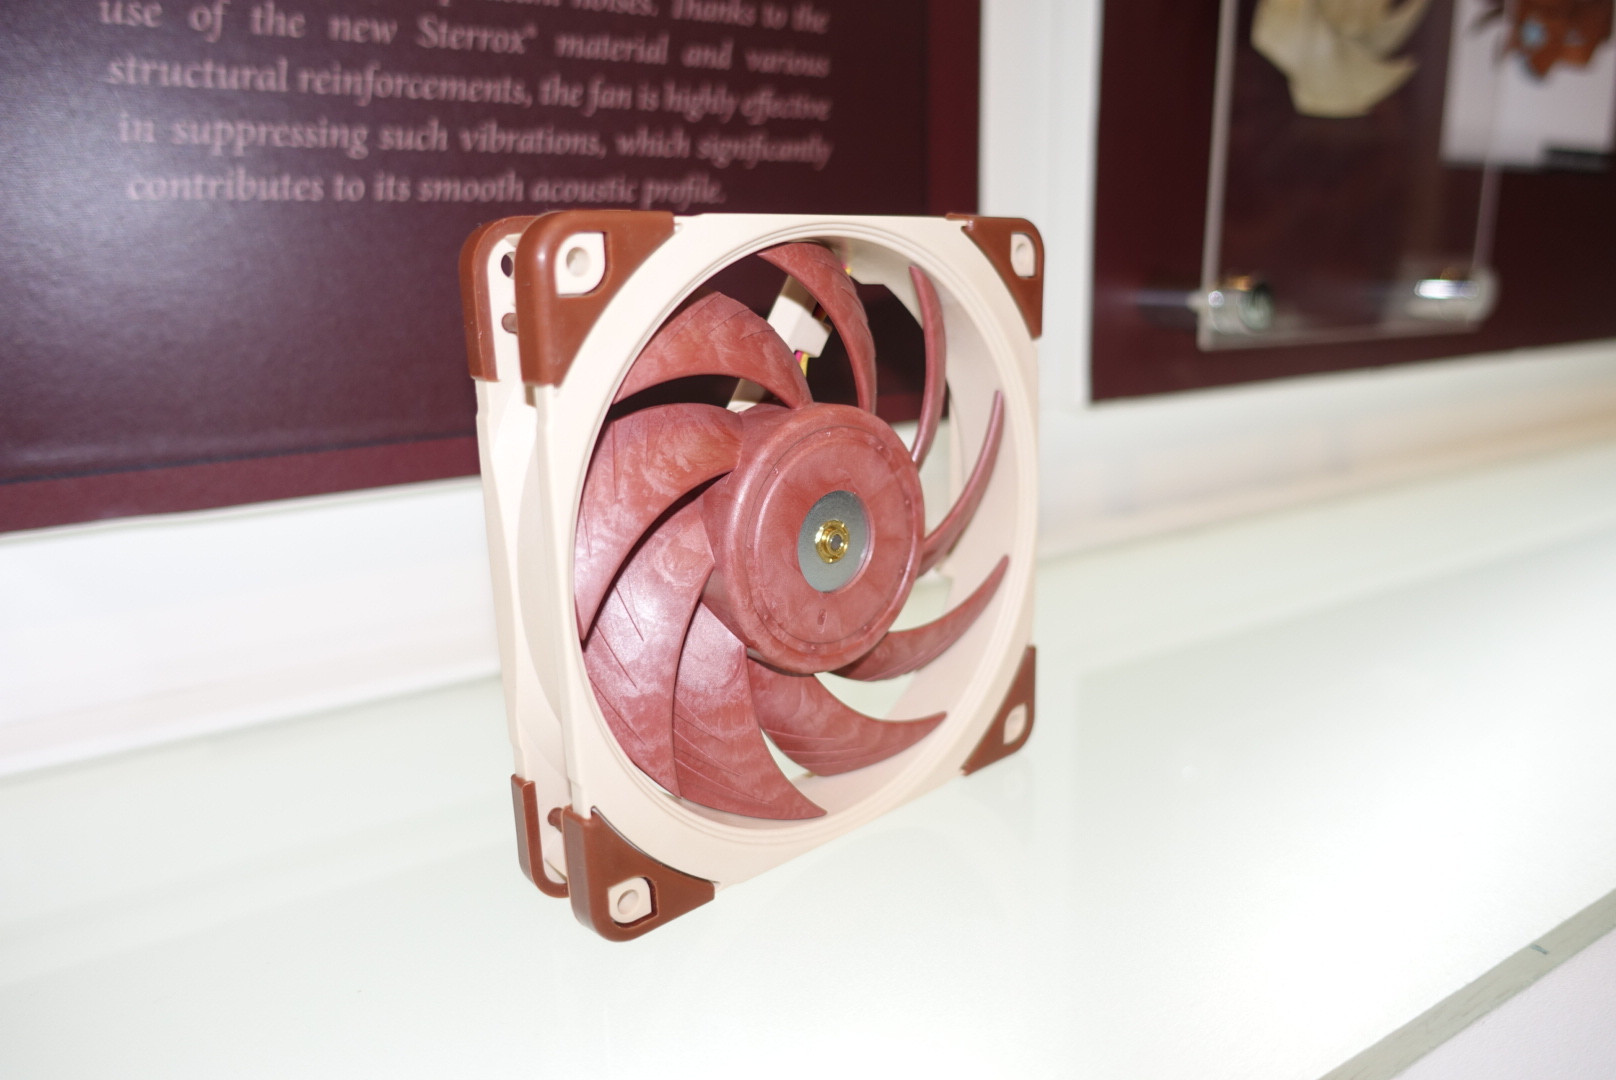 Noctua Demonstrate Their Next-Generation A-Series Fans at